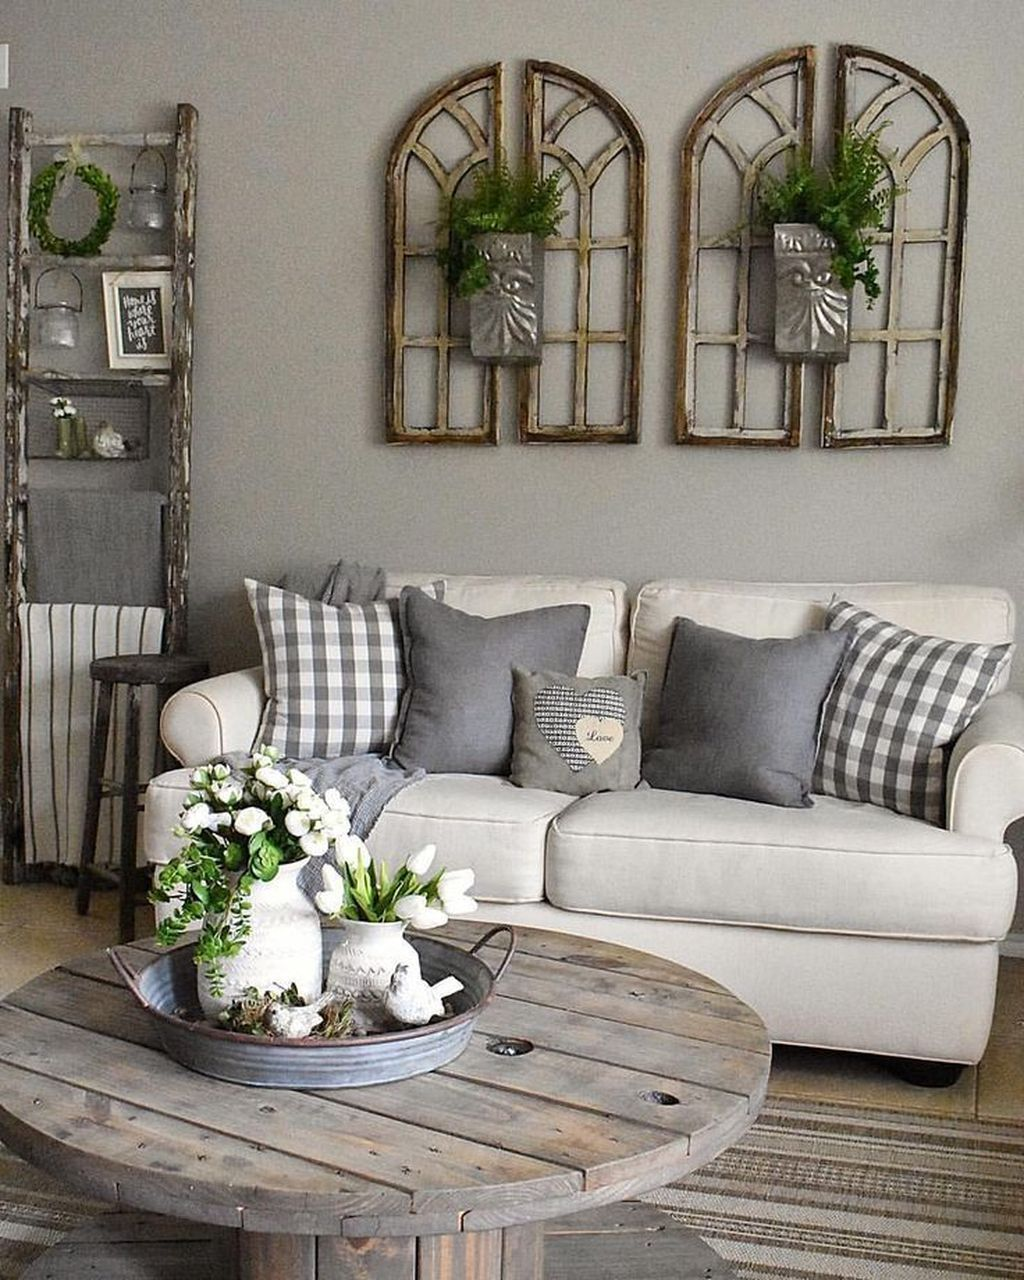 38 The Best Rustic Home Decor Ideas For Your Living Room Rustic Chic Living Room Farmhouse Decor Living Room Farm House Living Room